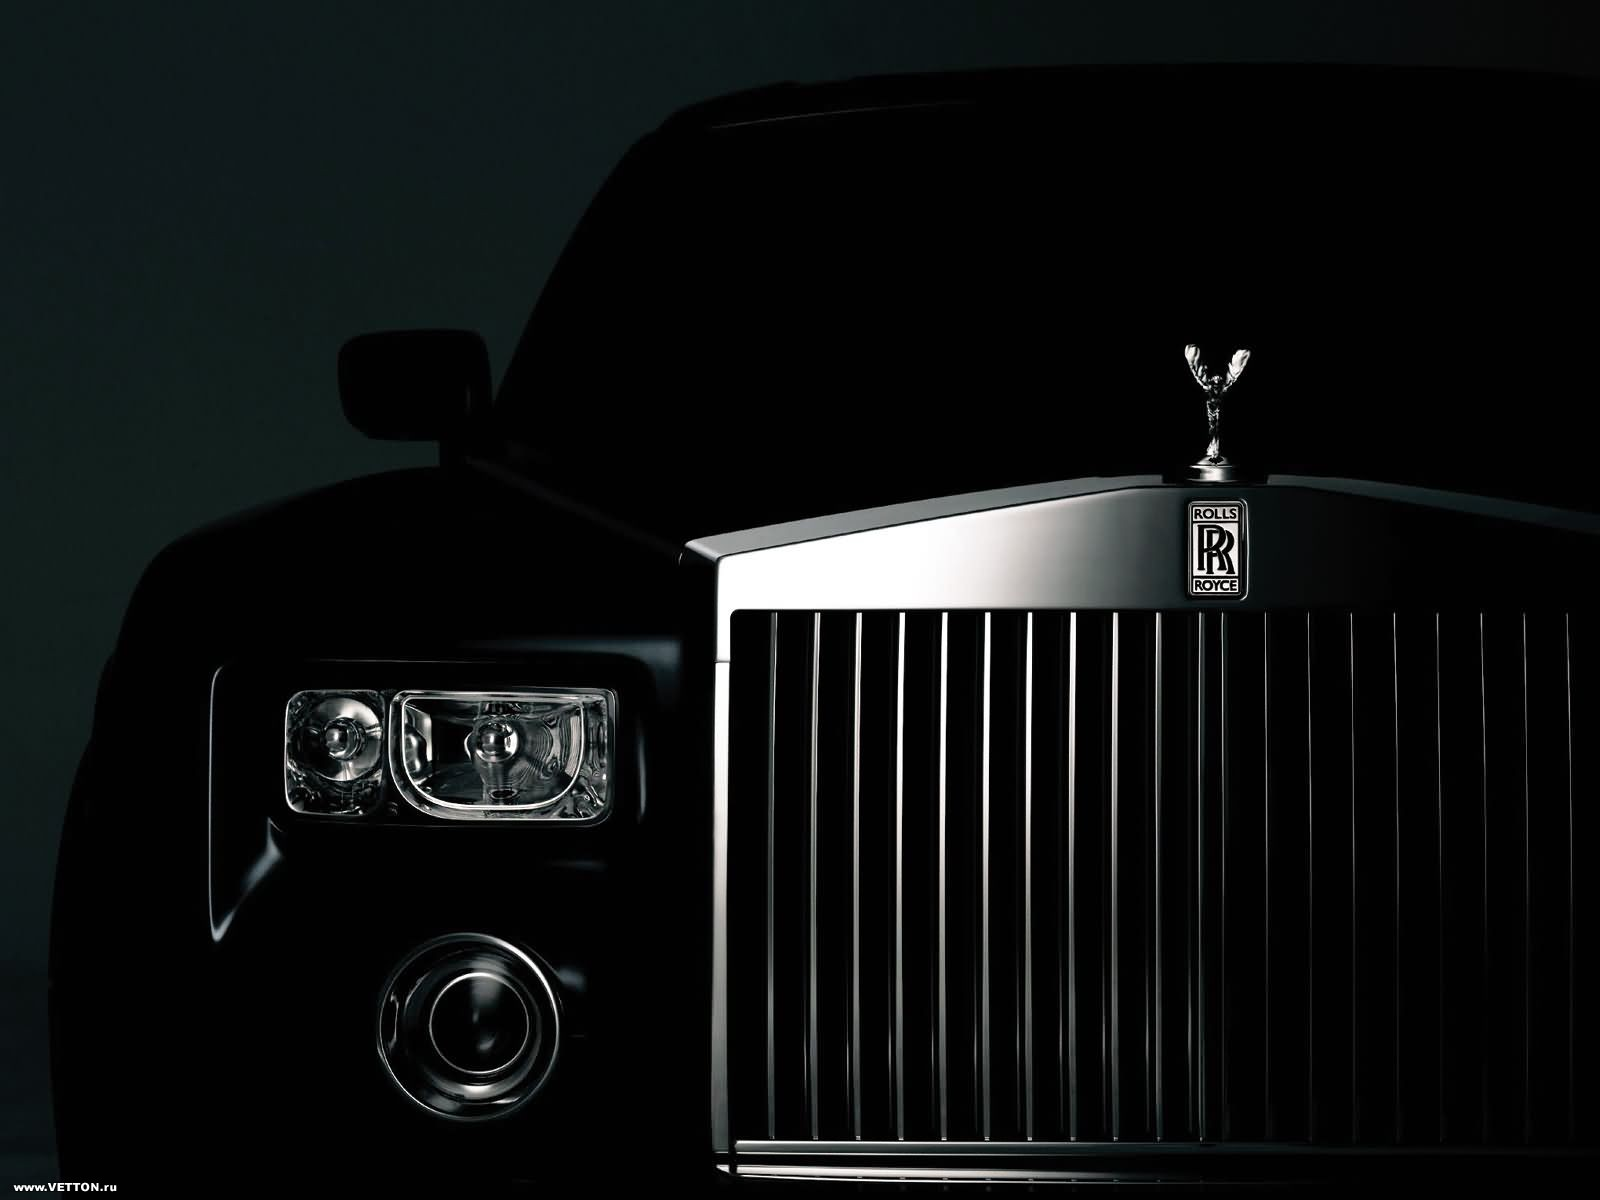 rolls royce hd computer backgrounds free cool car